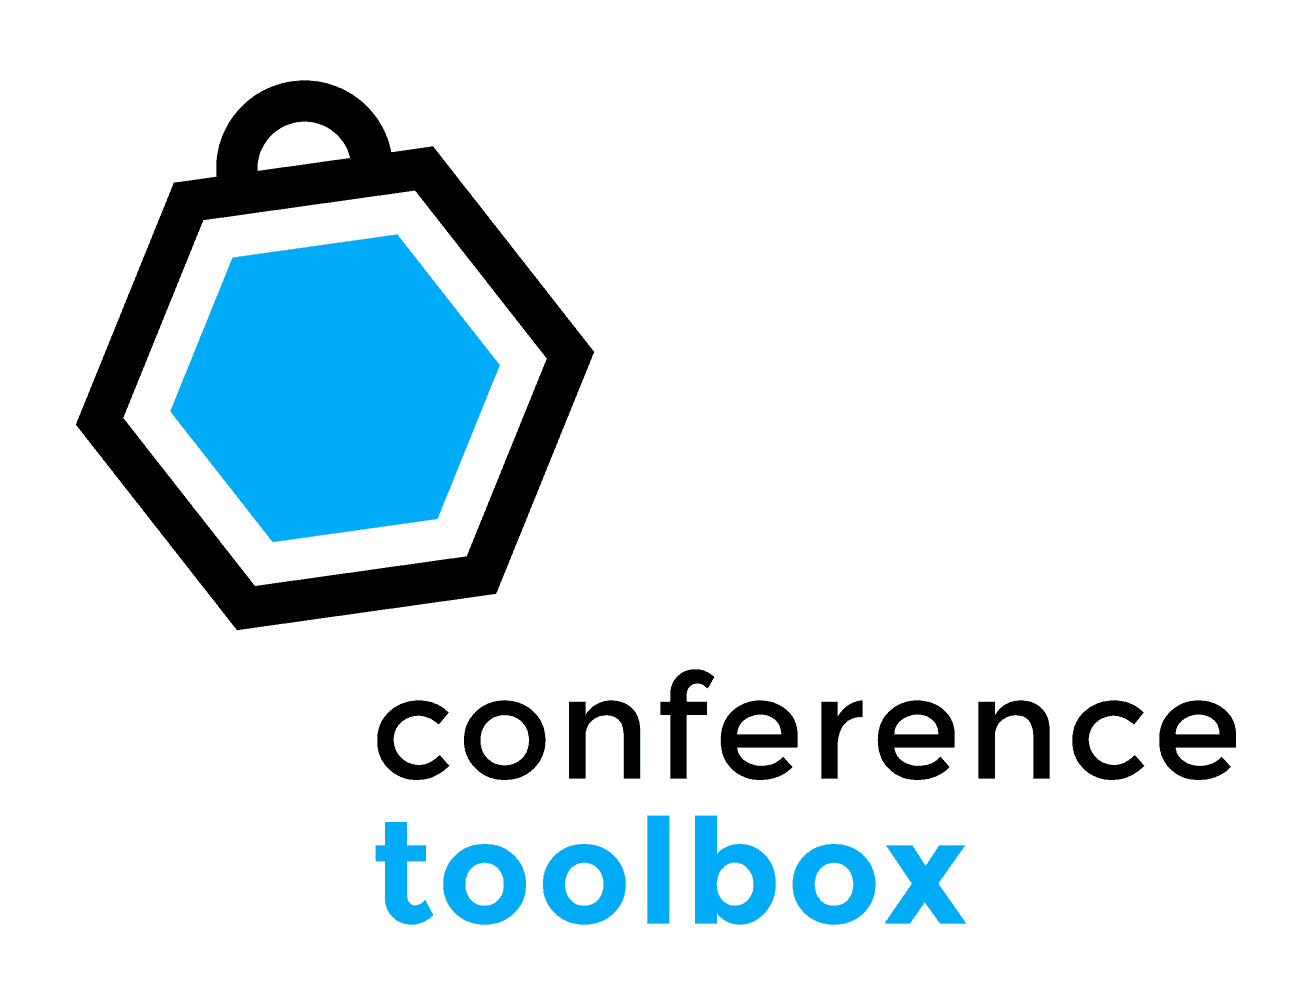 conference toolbox